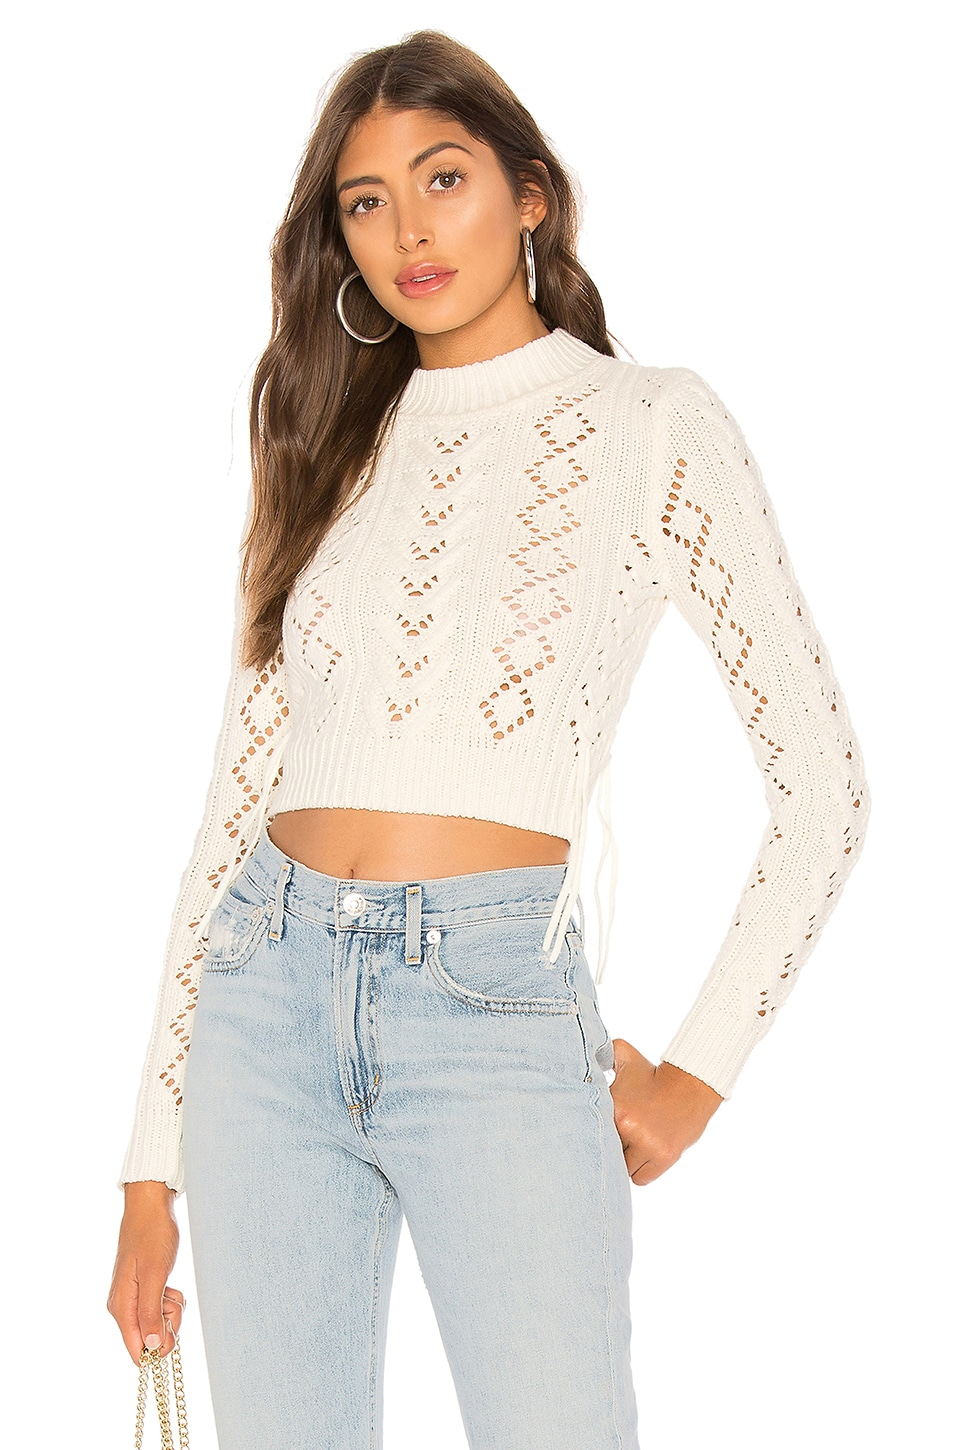 Lovers + Friends Lace Up Crop Sweater in Ivory